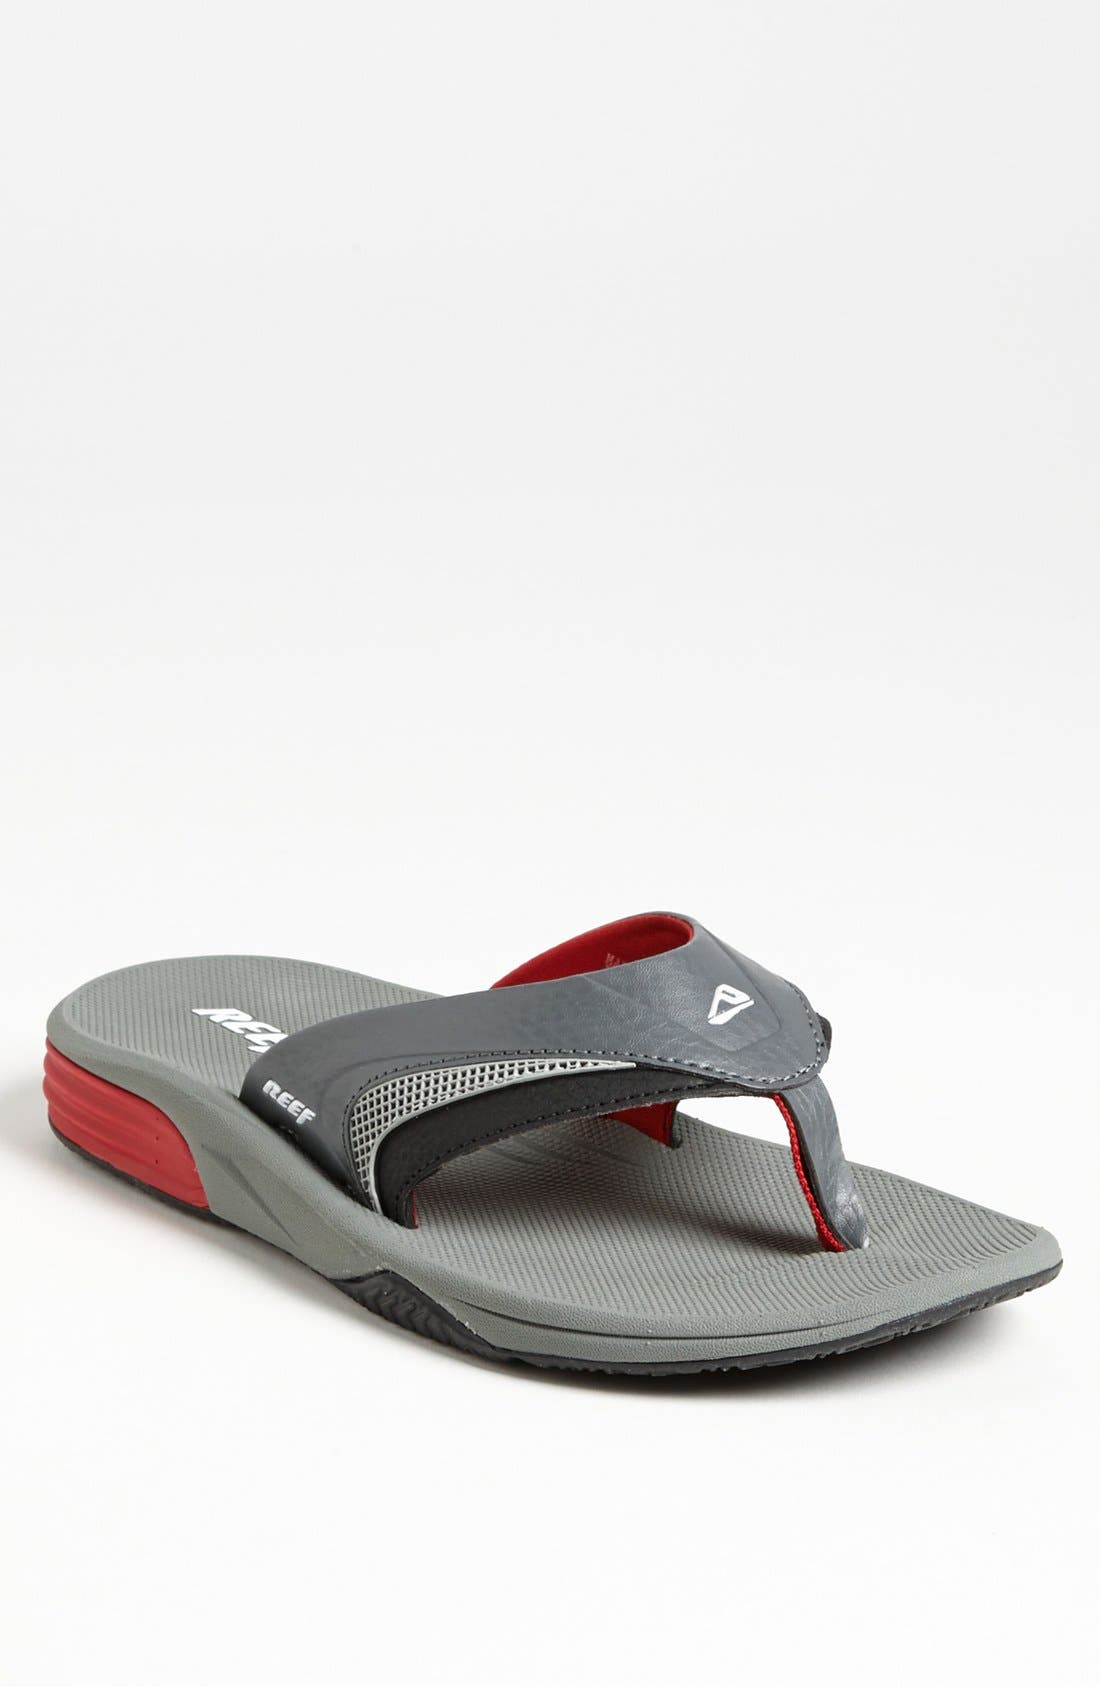 Alternate Image 1 Selected - Reef 'Phantom Player' Flip Flop (Men)